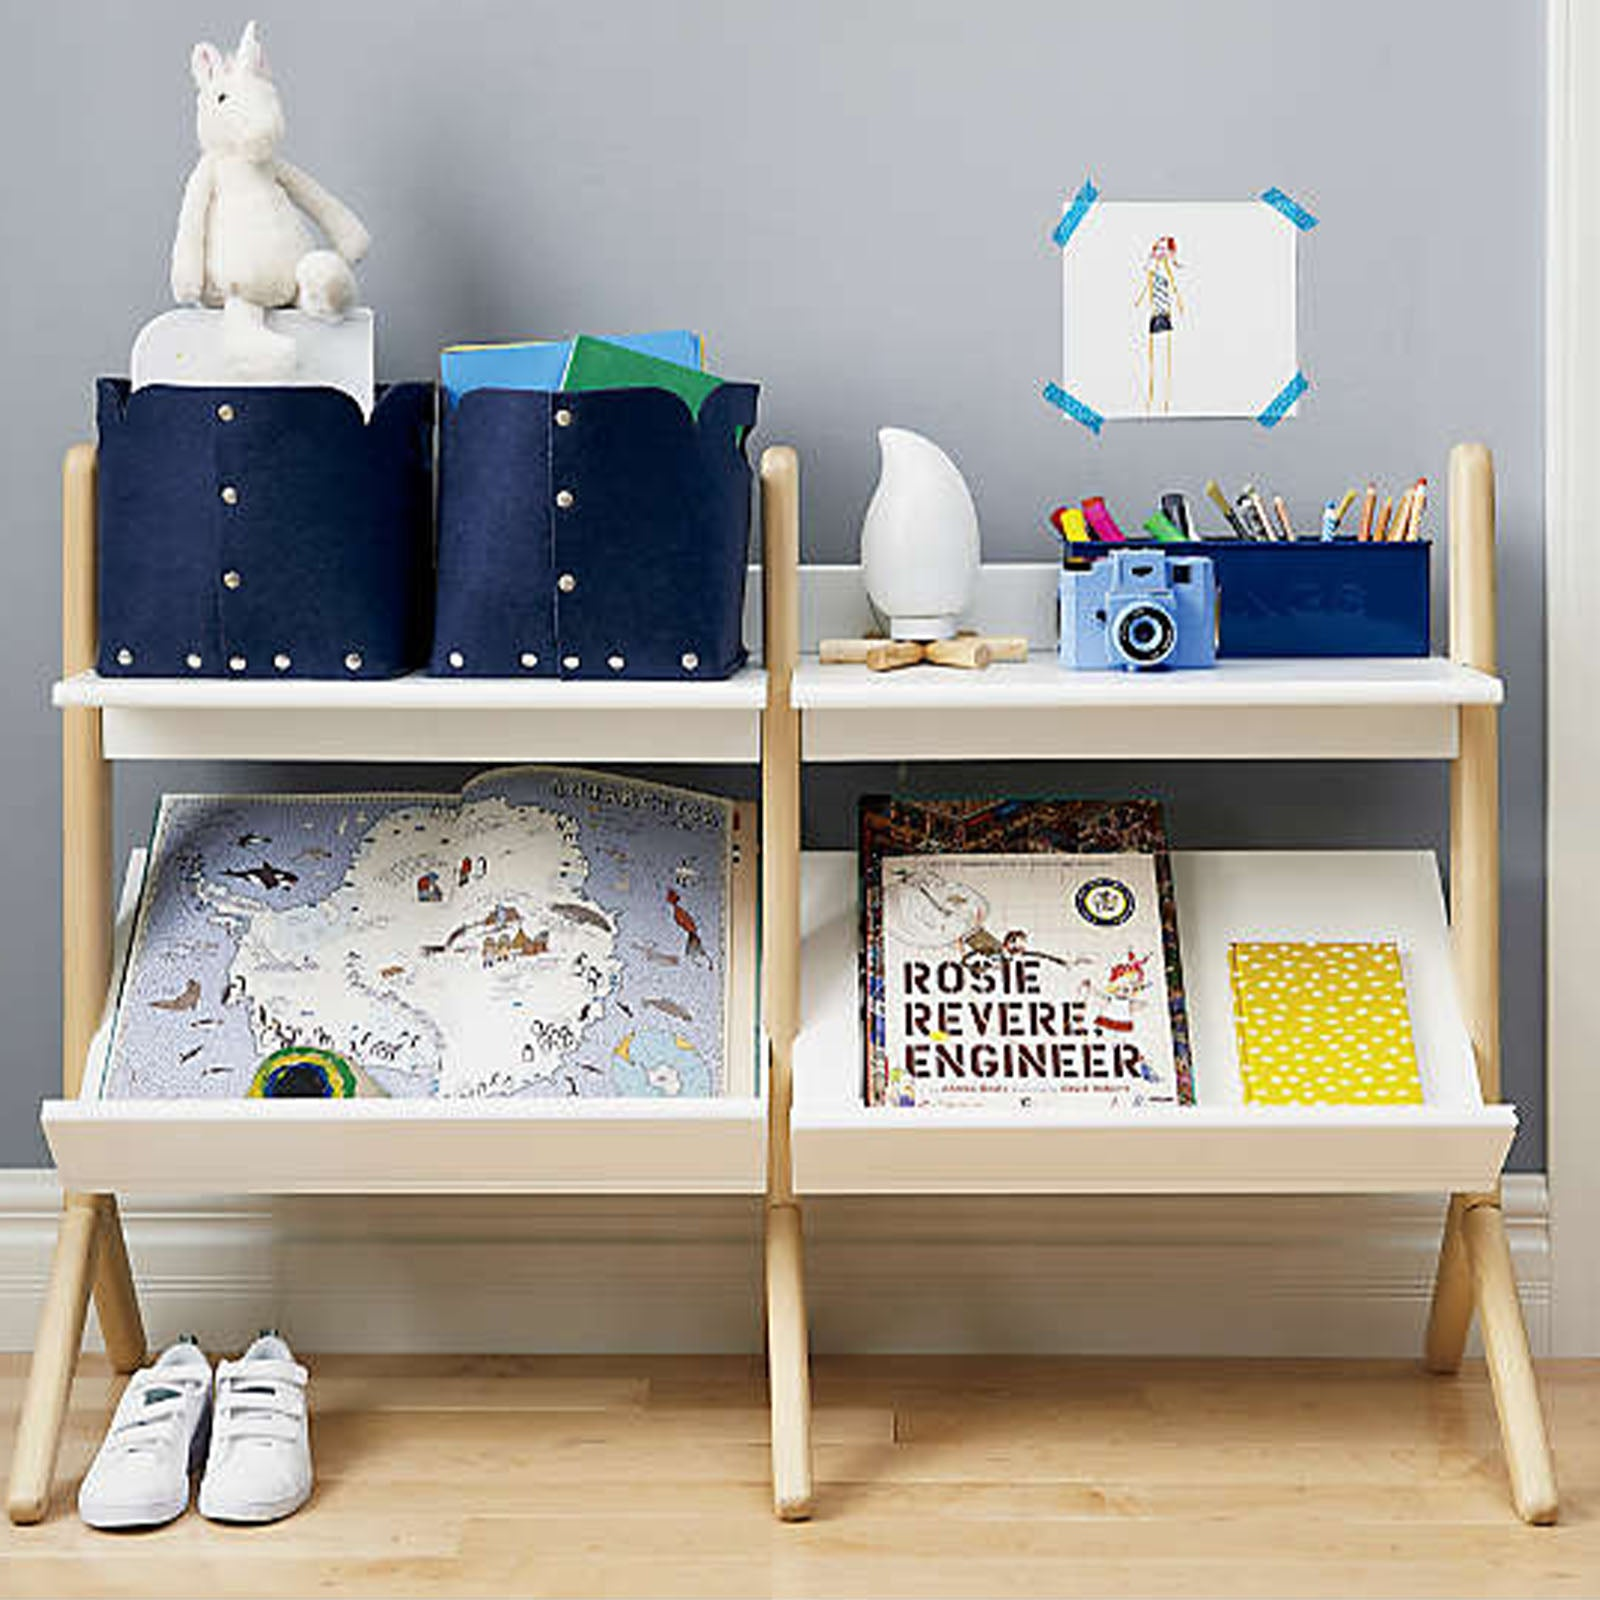 Kids Shelf  HY-S003 -  رف الاطفال - Shop Online Furniture and Home Decor Store in Dubai, UAE at ebarza